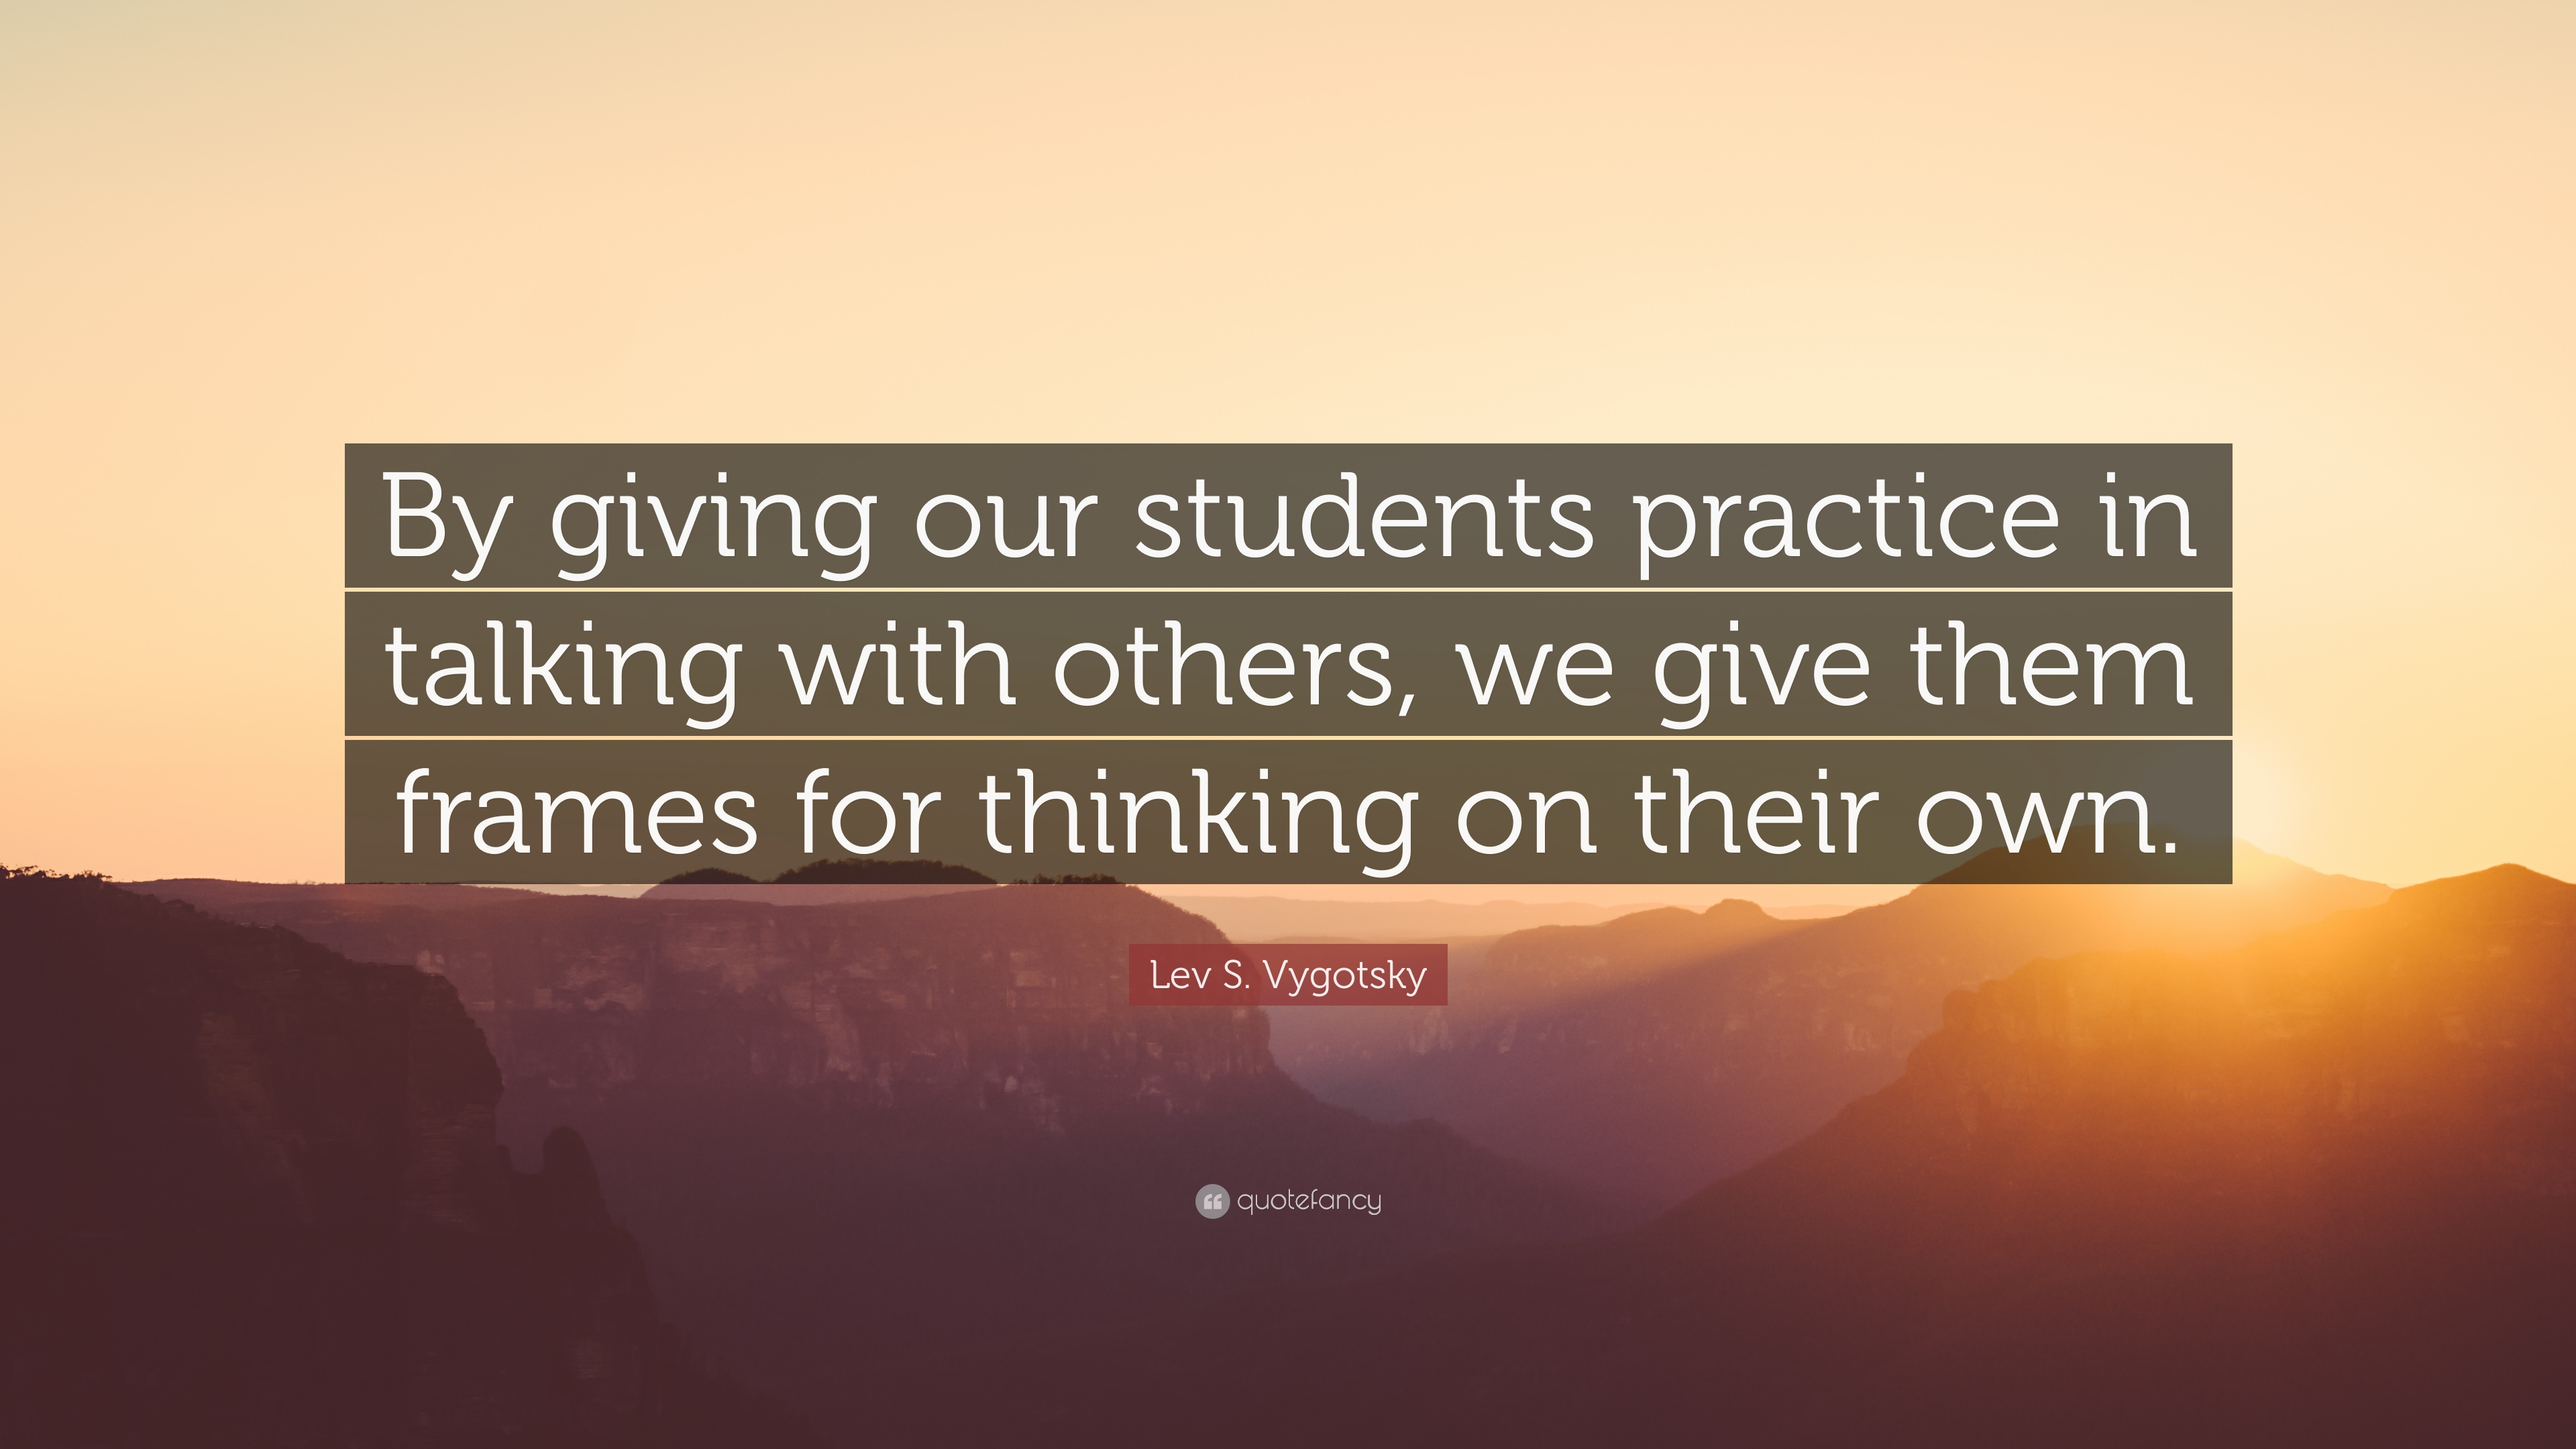 Lev S Vygotsky Quote By Giving Our Students Practice In Talking